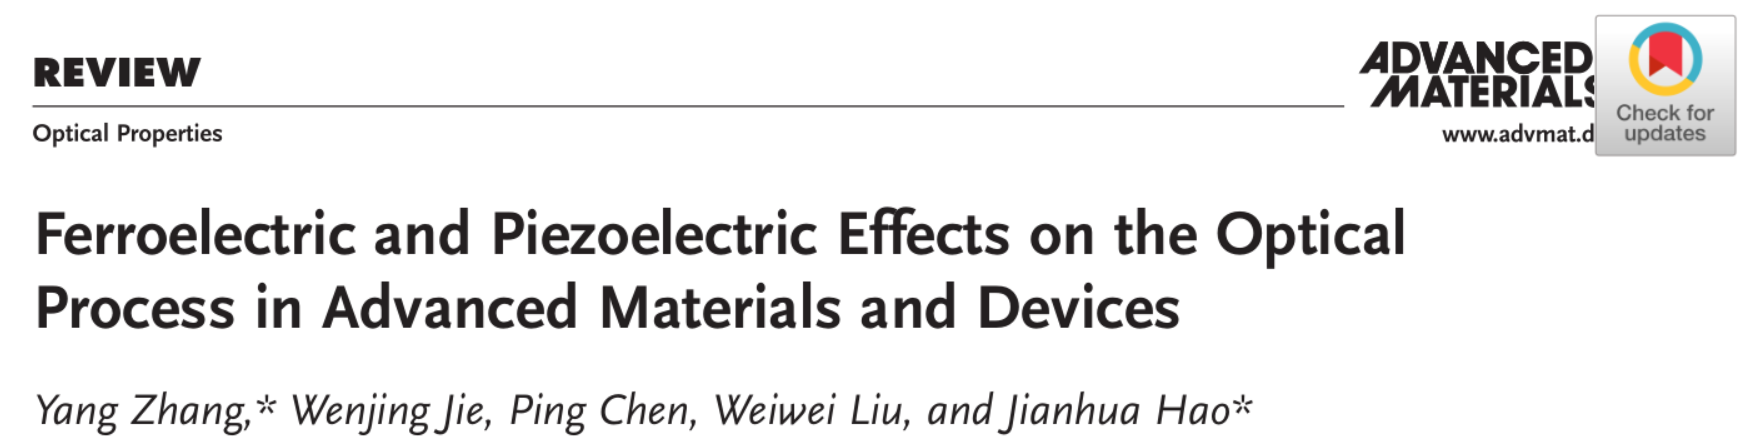 Ferroelectric and Piezoelectric Effects on the Optical Process in Advanced Materials and Devices